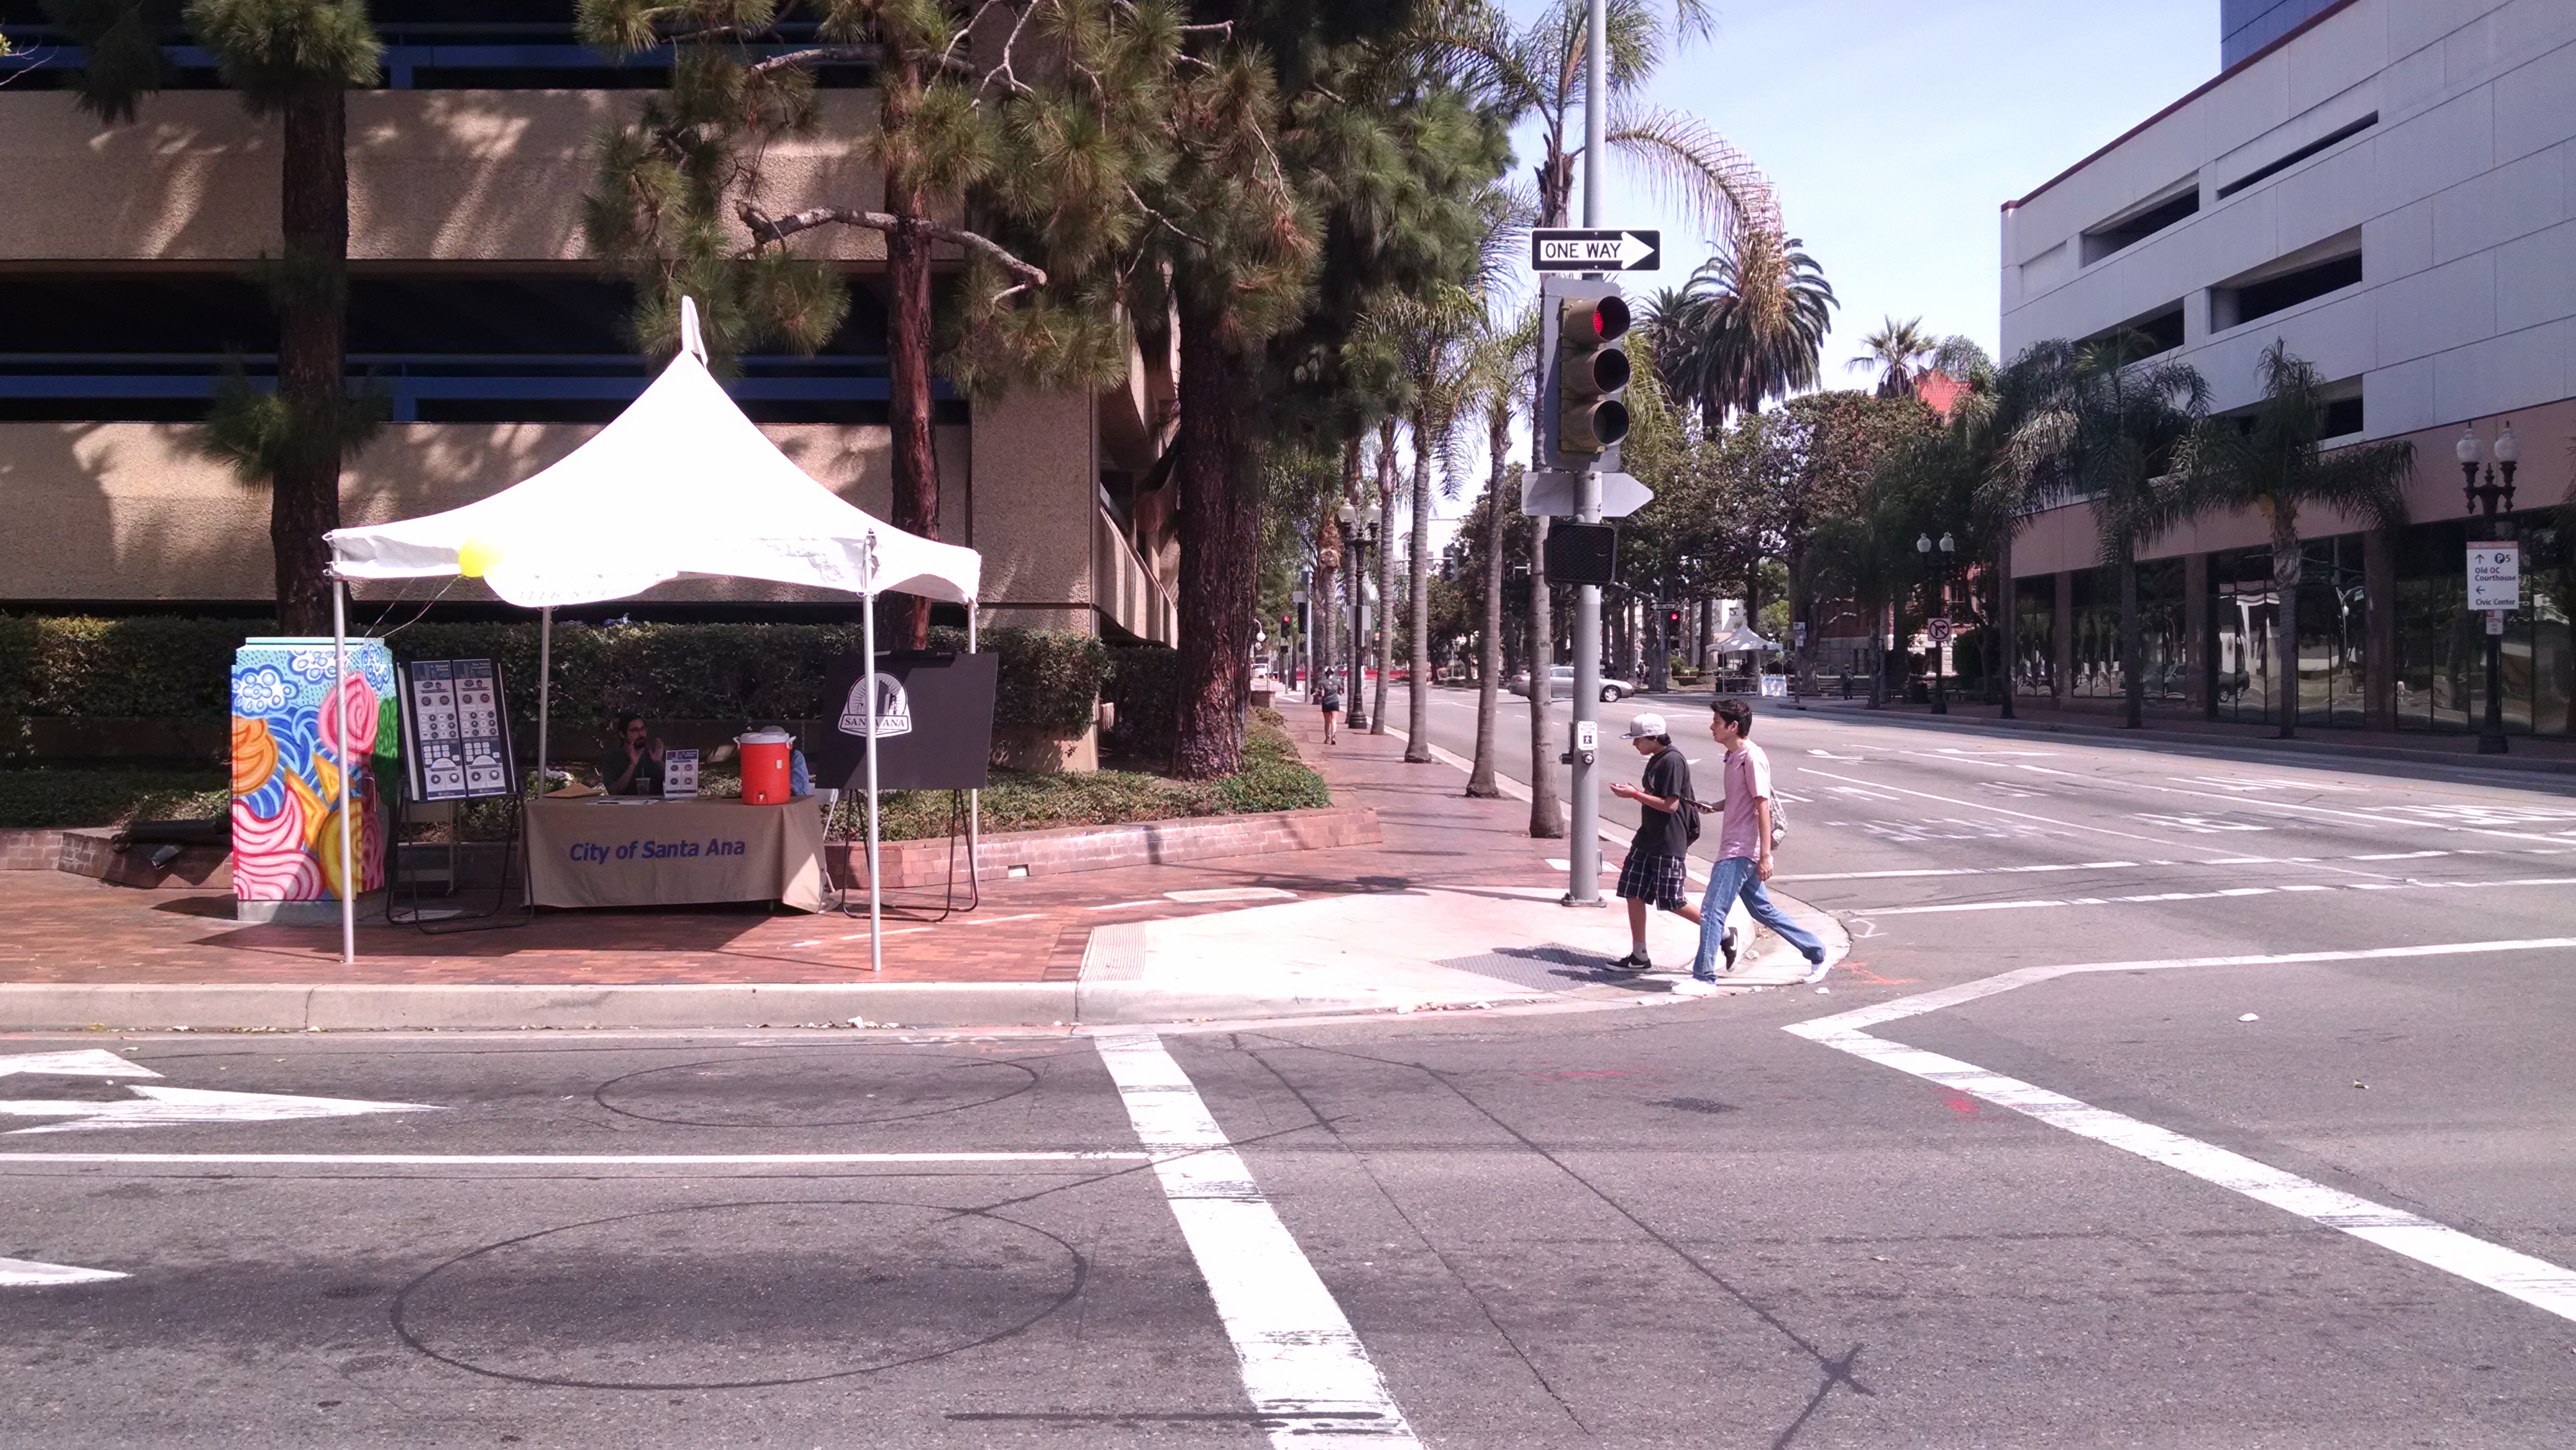 Santa Ana's Planning and Building Agency's booth on Fifth Street and Broadway. Photo by Kristopher Fortin.